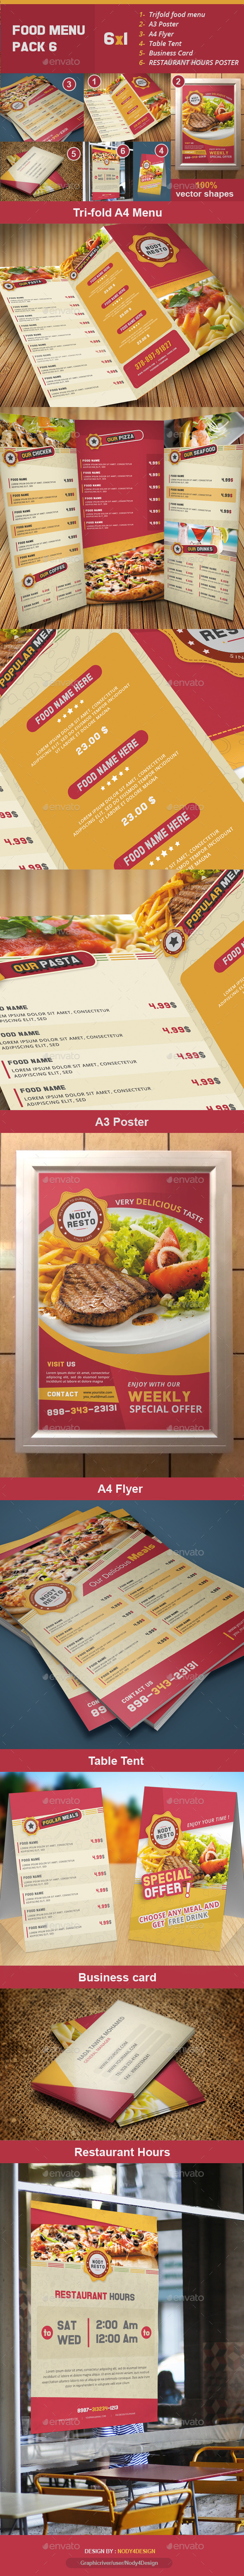 Food Menu Pack 6